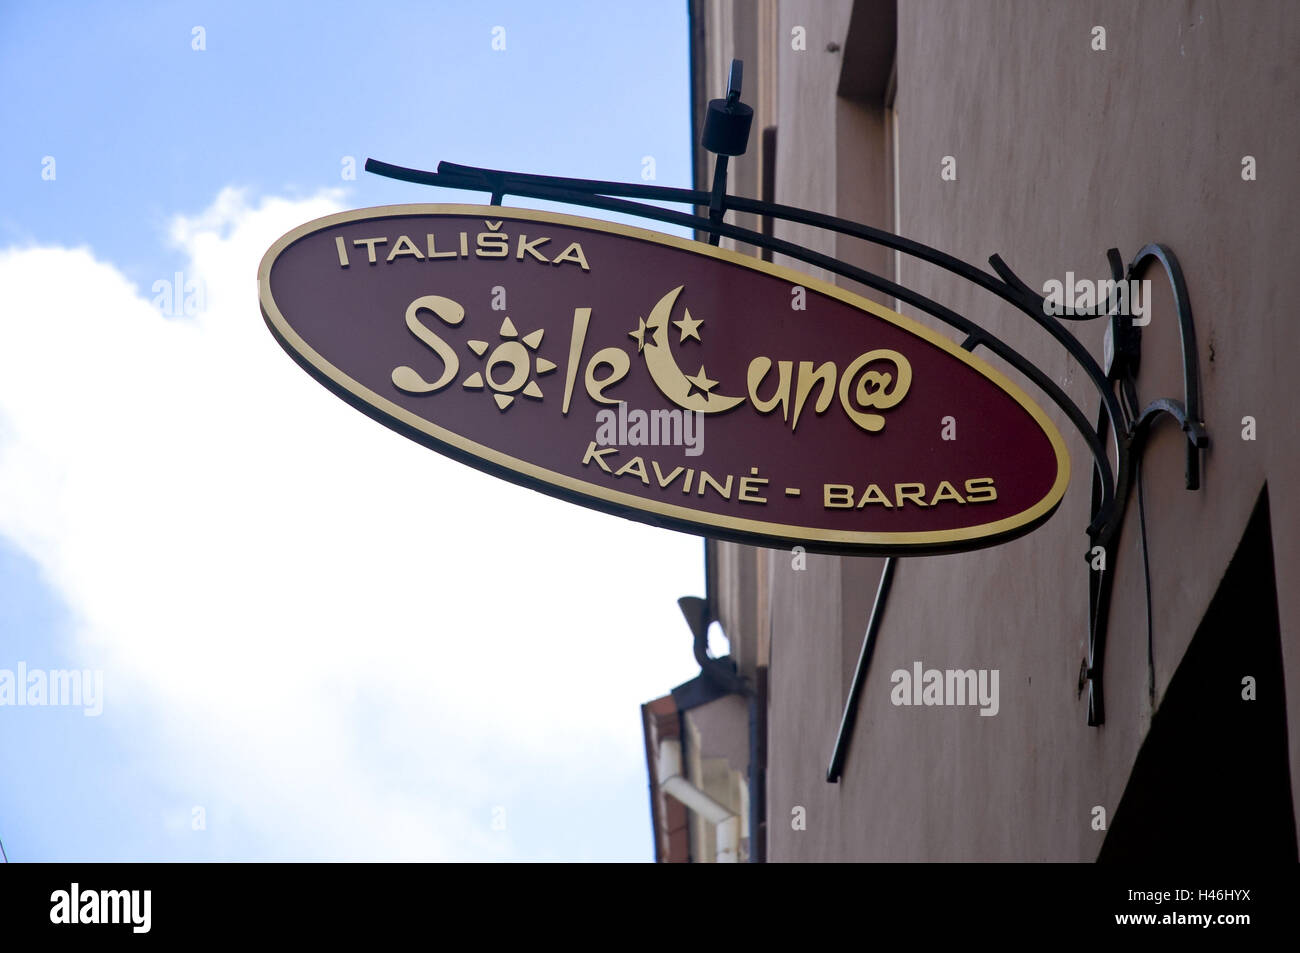 Lithuania, Vilnius, Old Town, bar, in Italian, detail, sign, - Stock Image